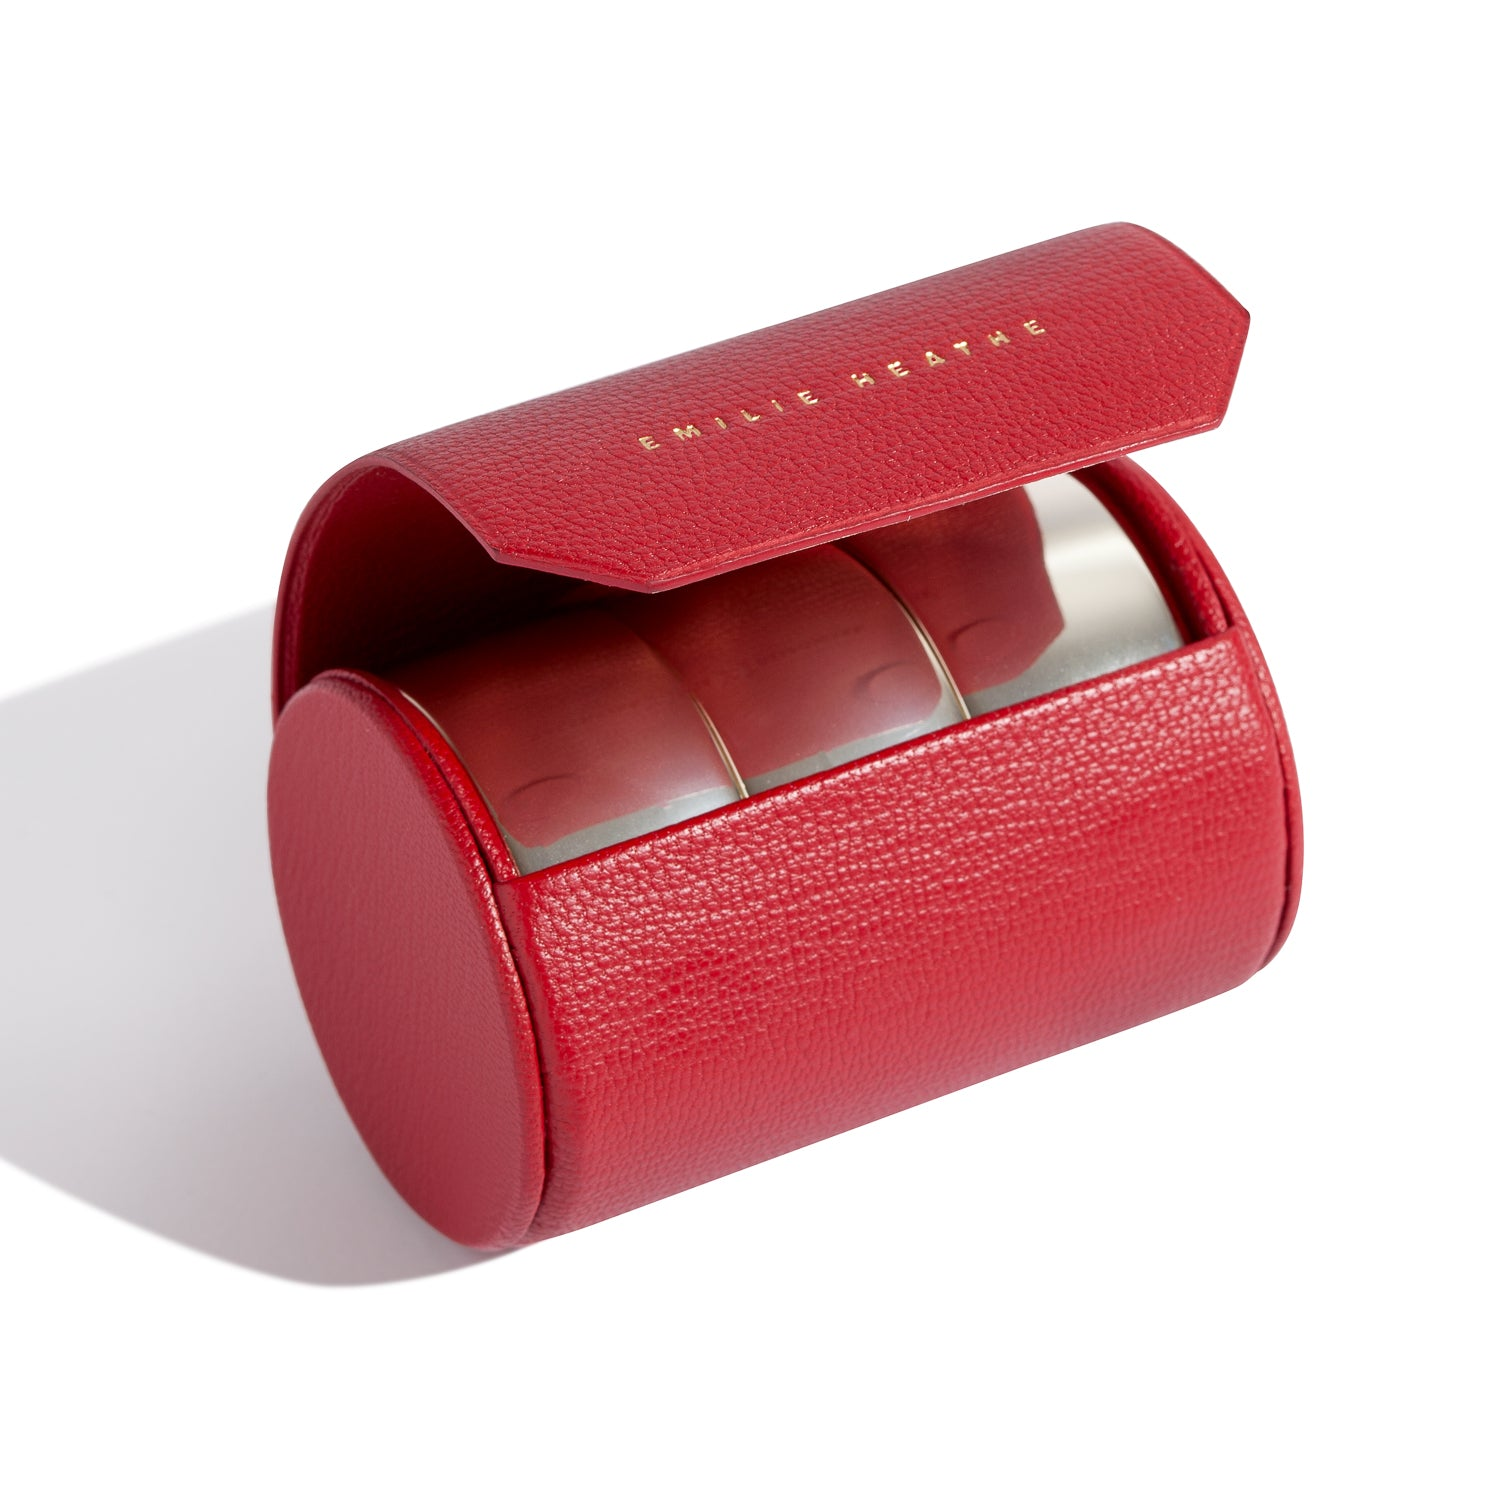 THE PERFECT RED CASE-the artist leather magnetic case emilie heathe